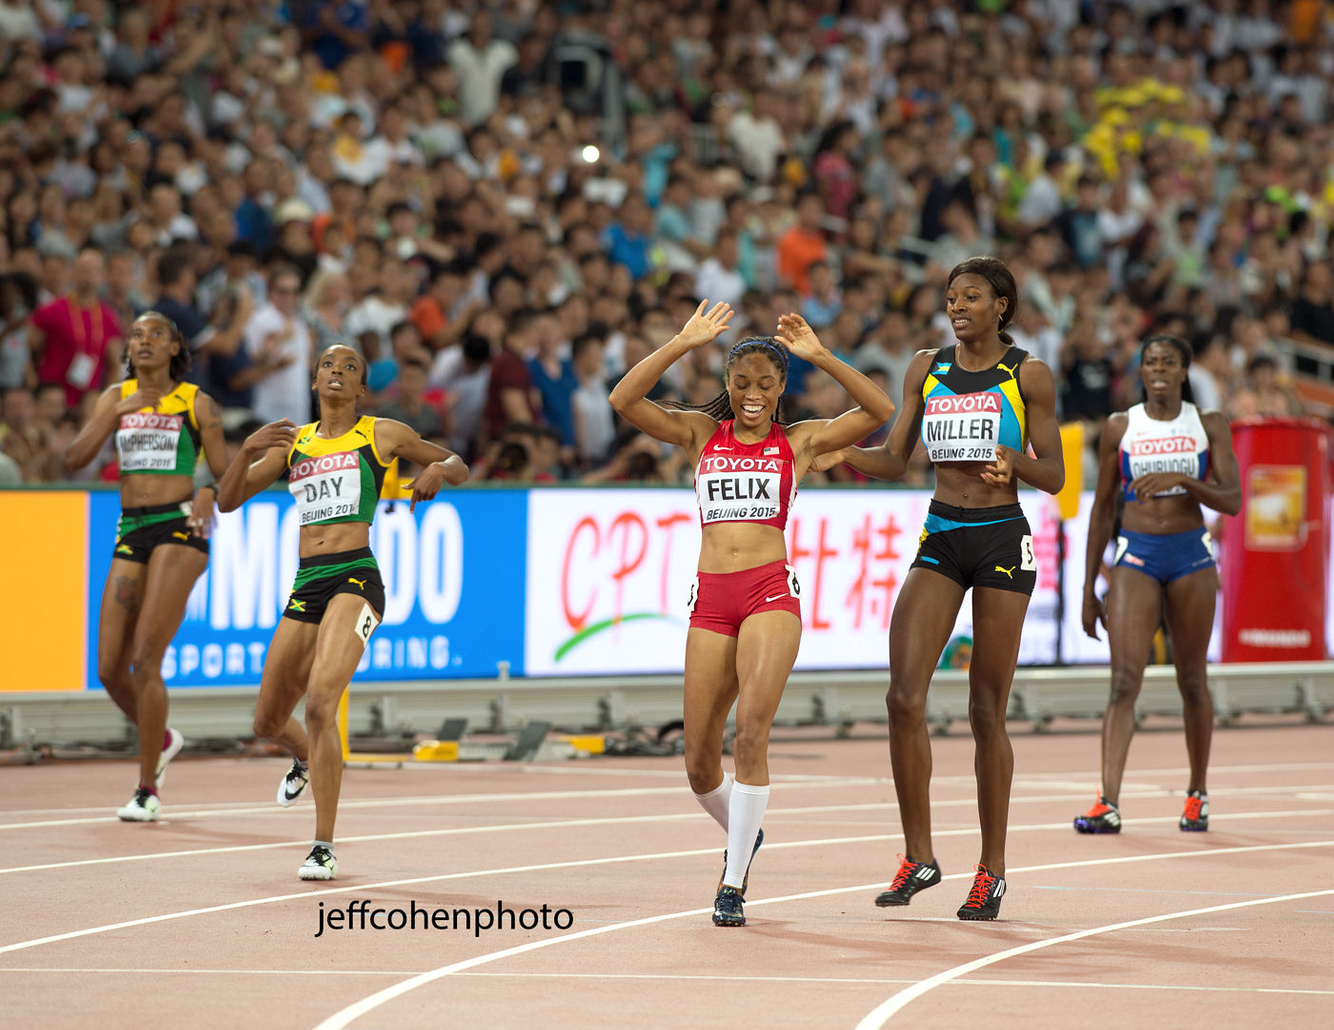 1beijing2015_night__6_allyson_felix_400m_final_finish__jeff_cohen_photo_24682_web.jpg